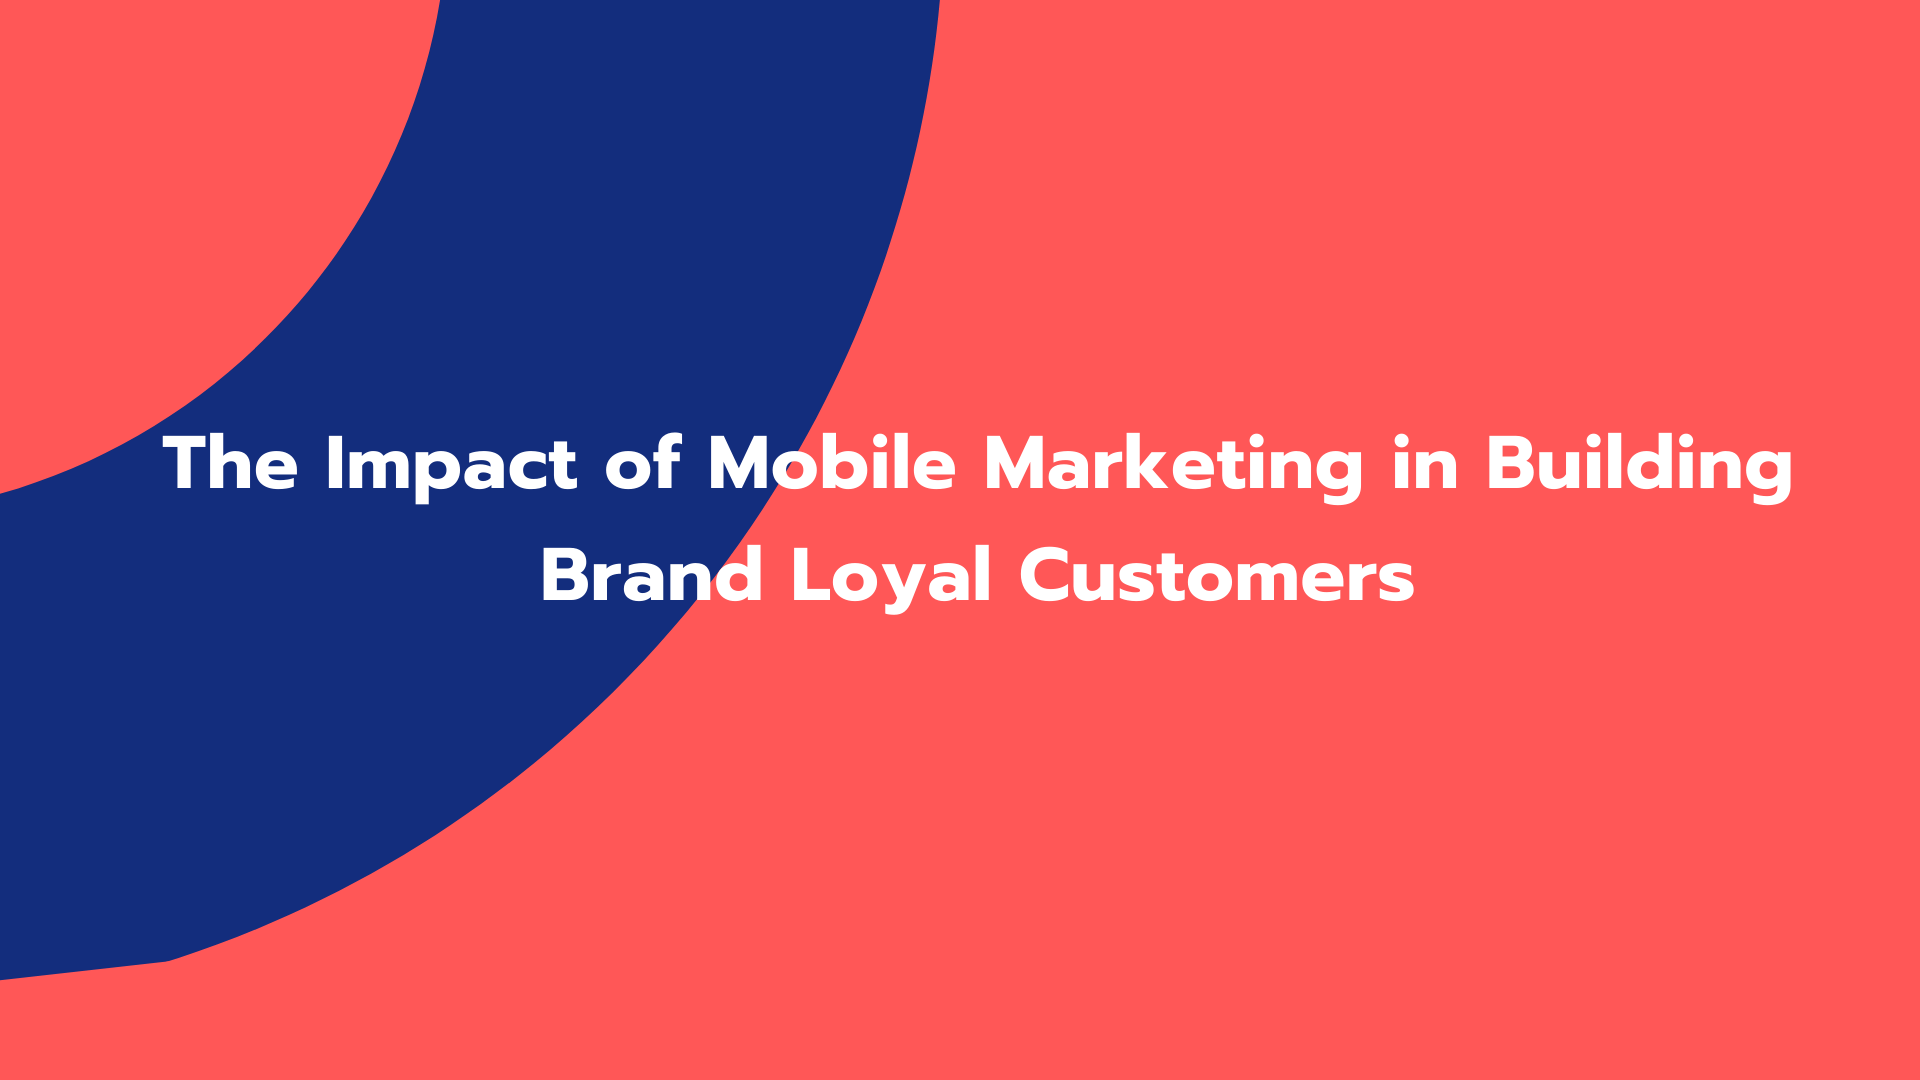 The Impact of Mobile Marketing in Building Brand Loyal Customers